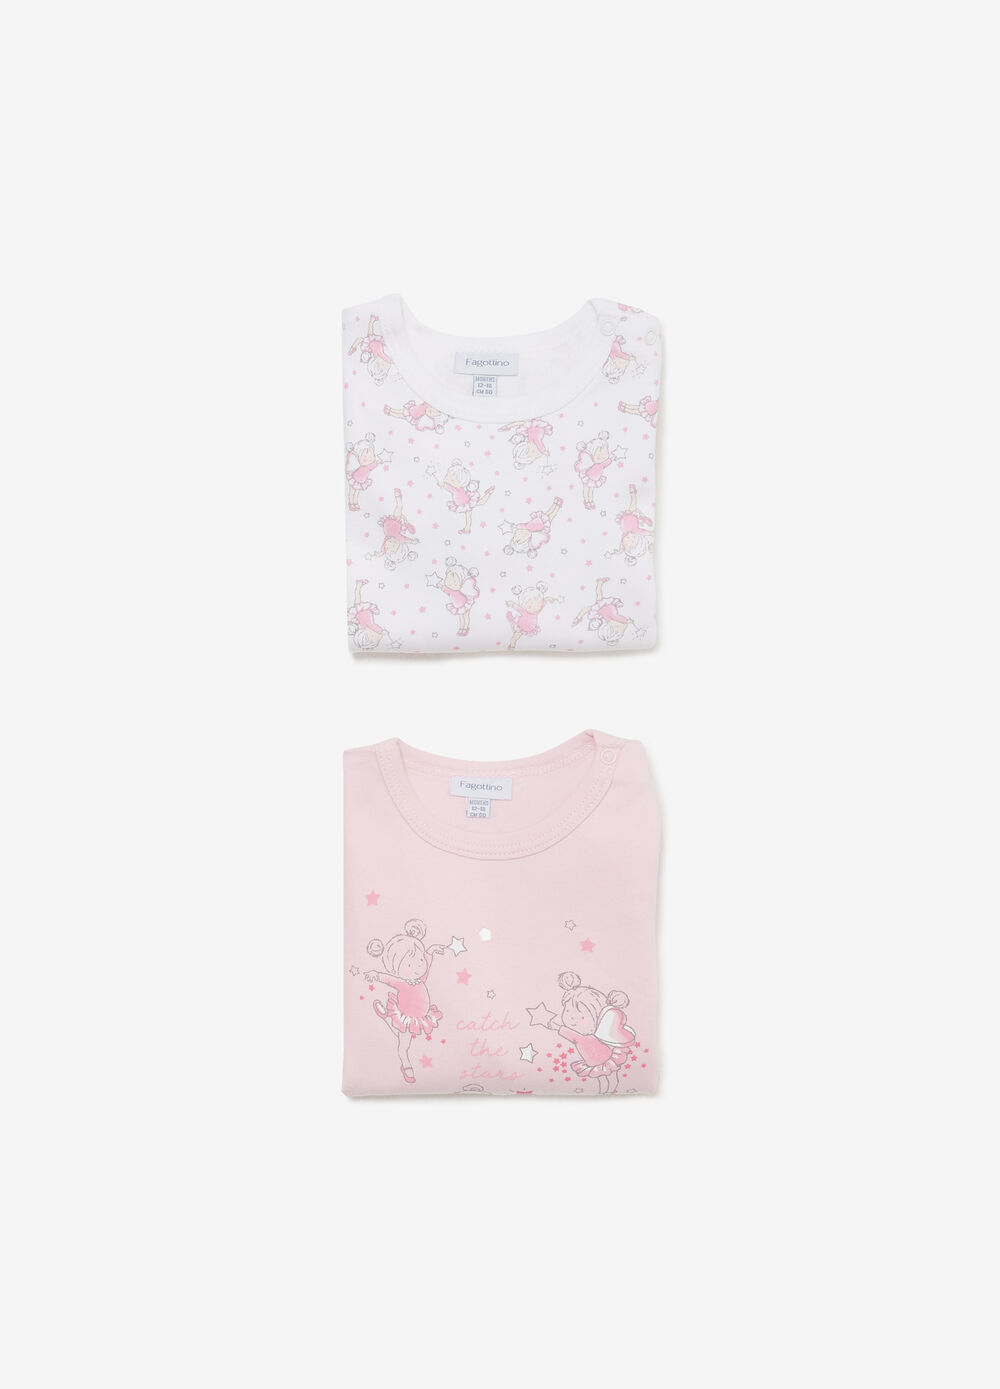 Two-pack ballerina print and pattern bodysuits